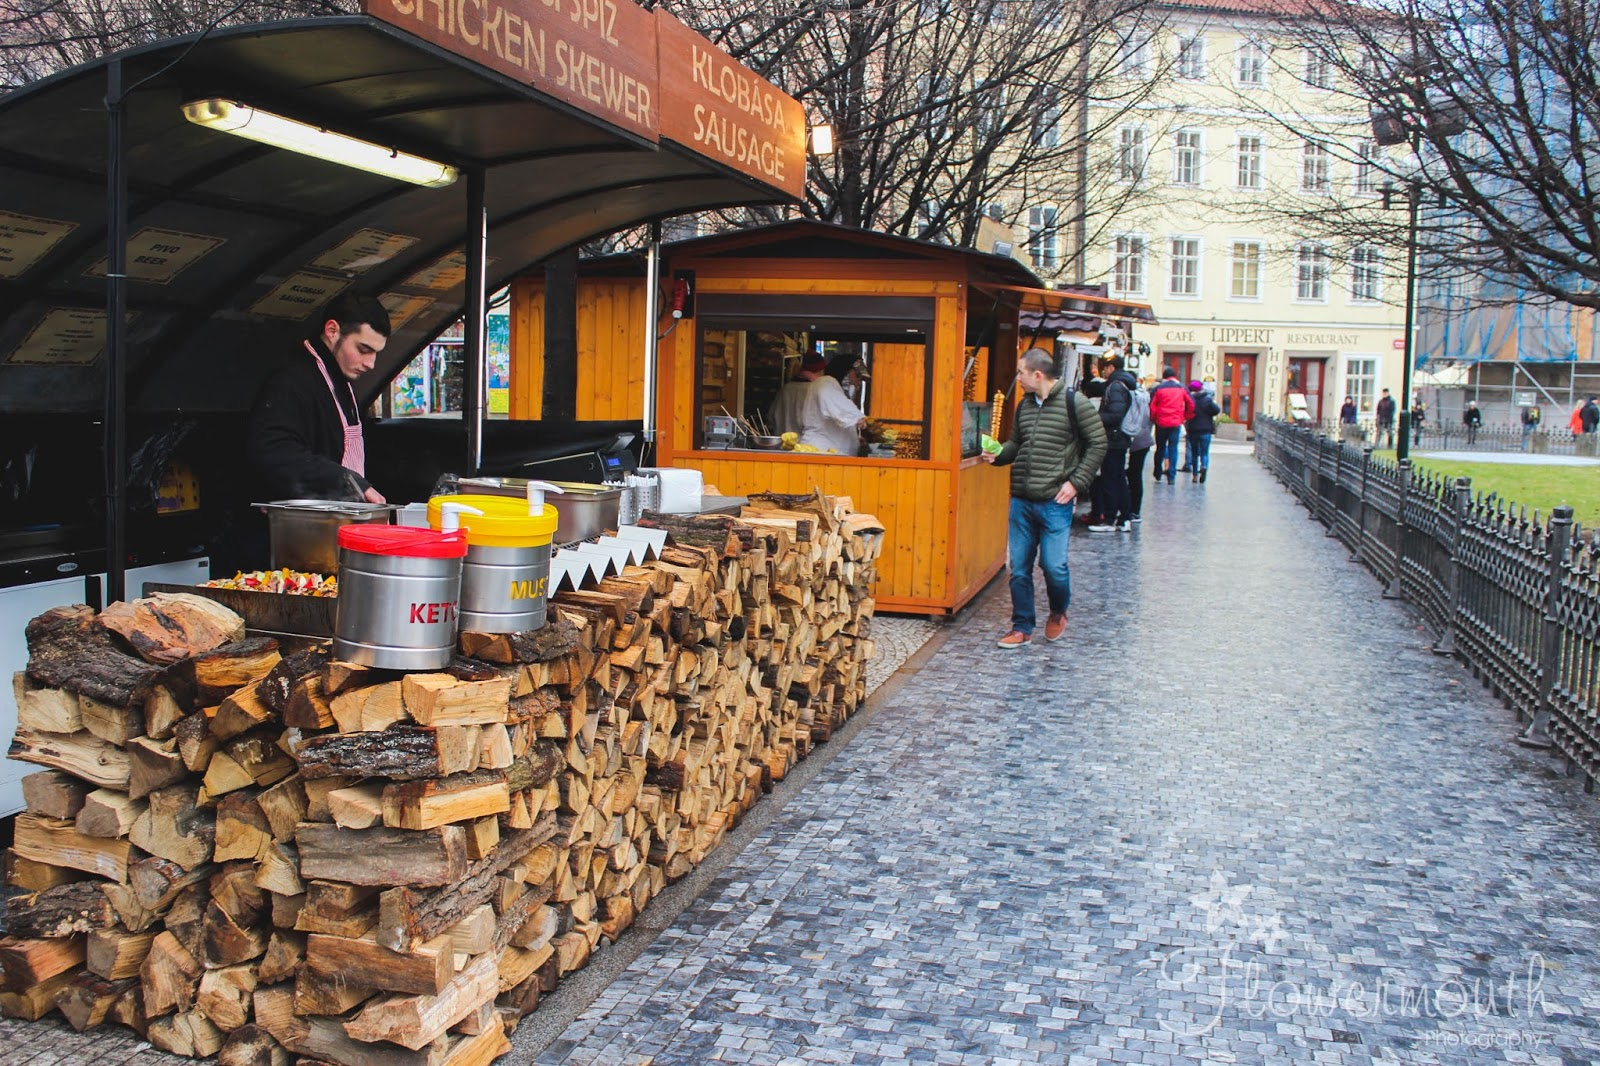 Food stalls in Prague's Old Town square